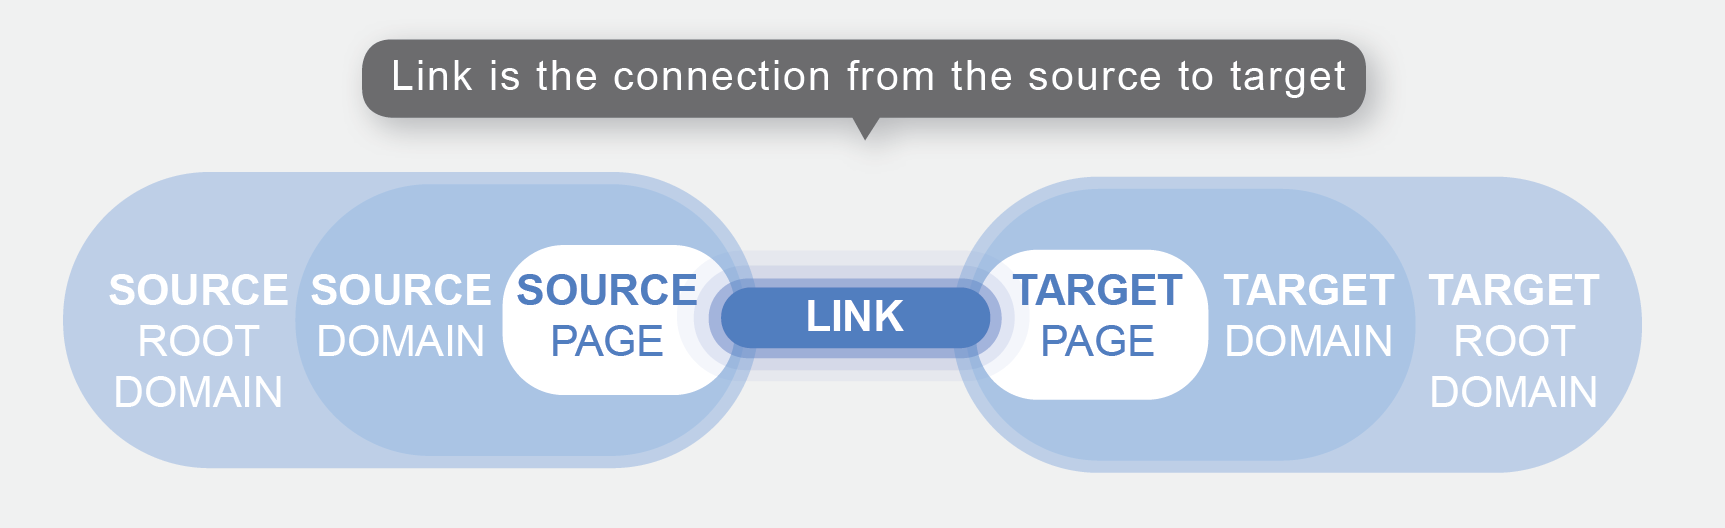 A link is a connection from source to target